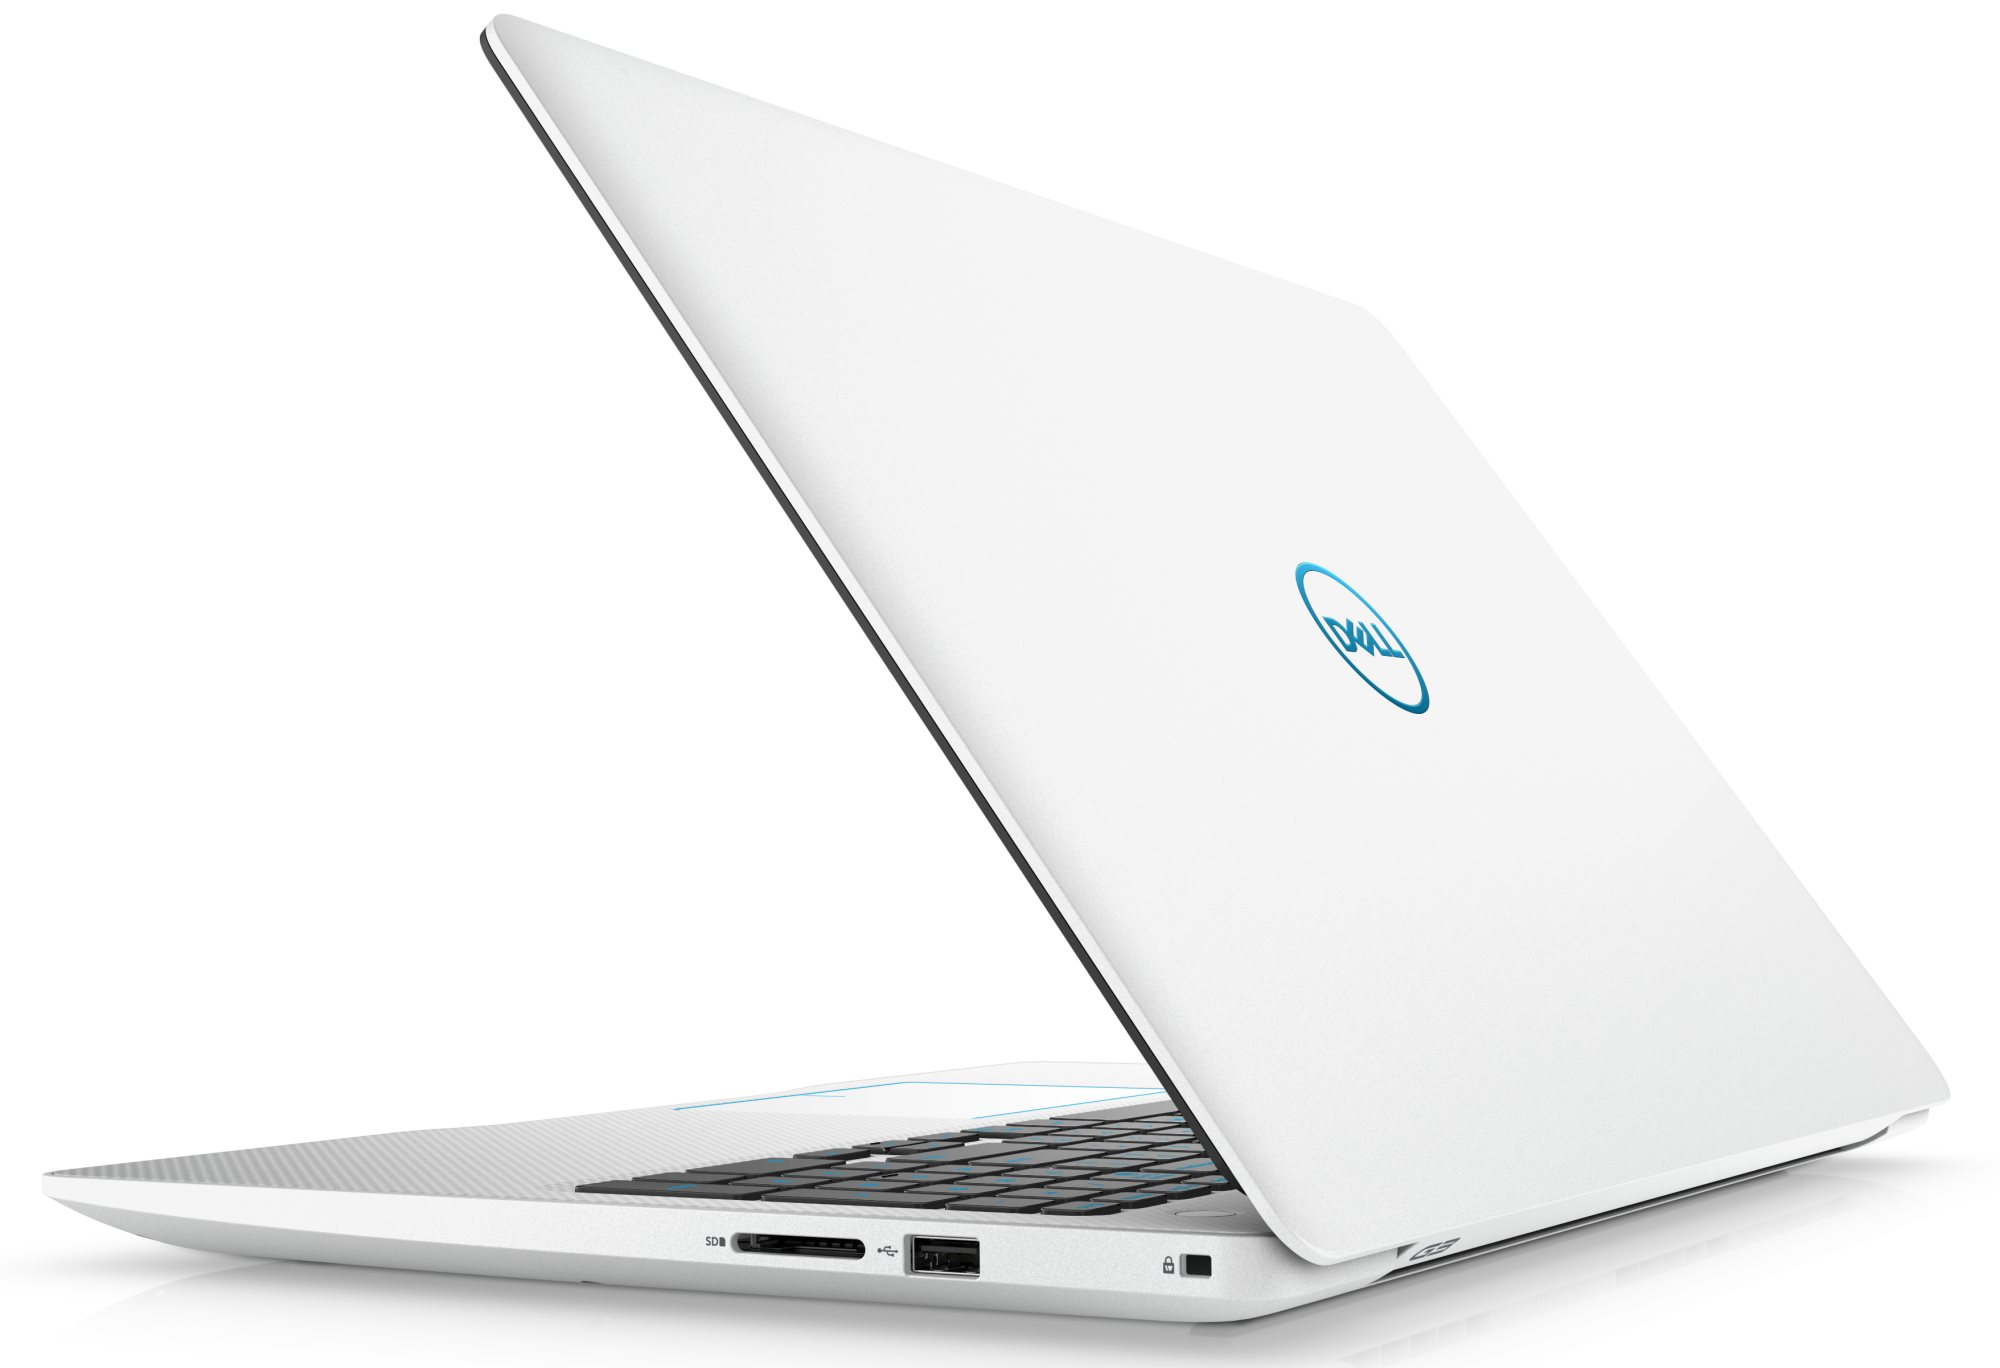 Dell G-Series Gaming Laptops - Dell's Spring Range: New 8th Gen